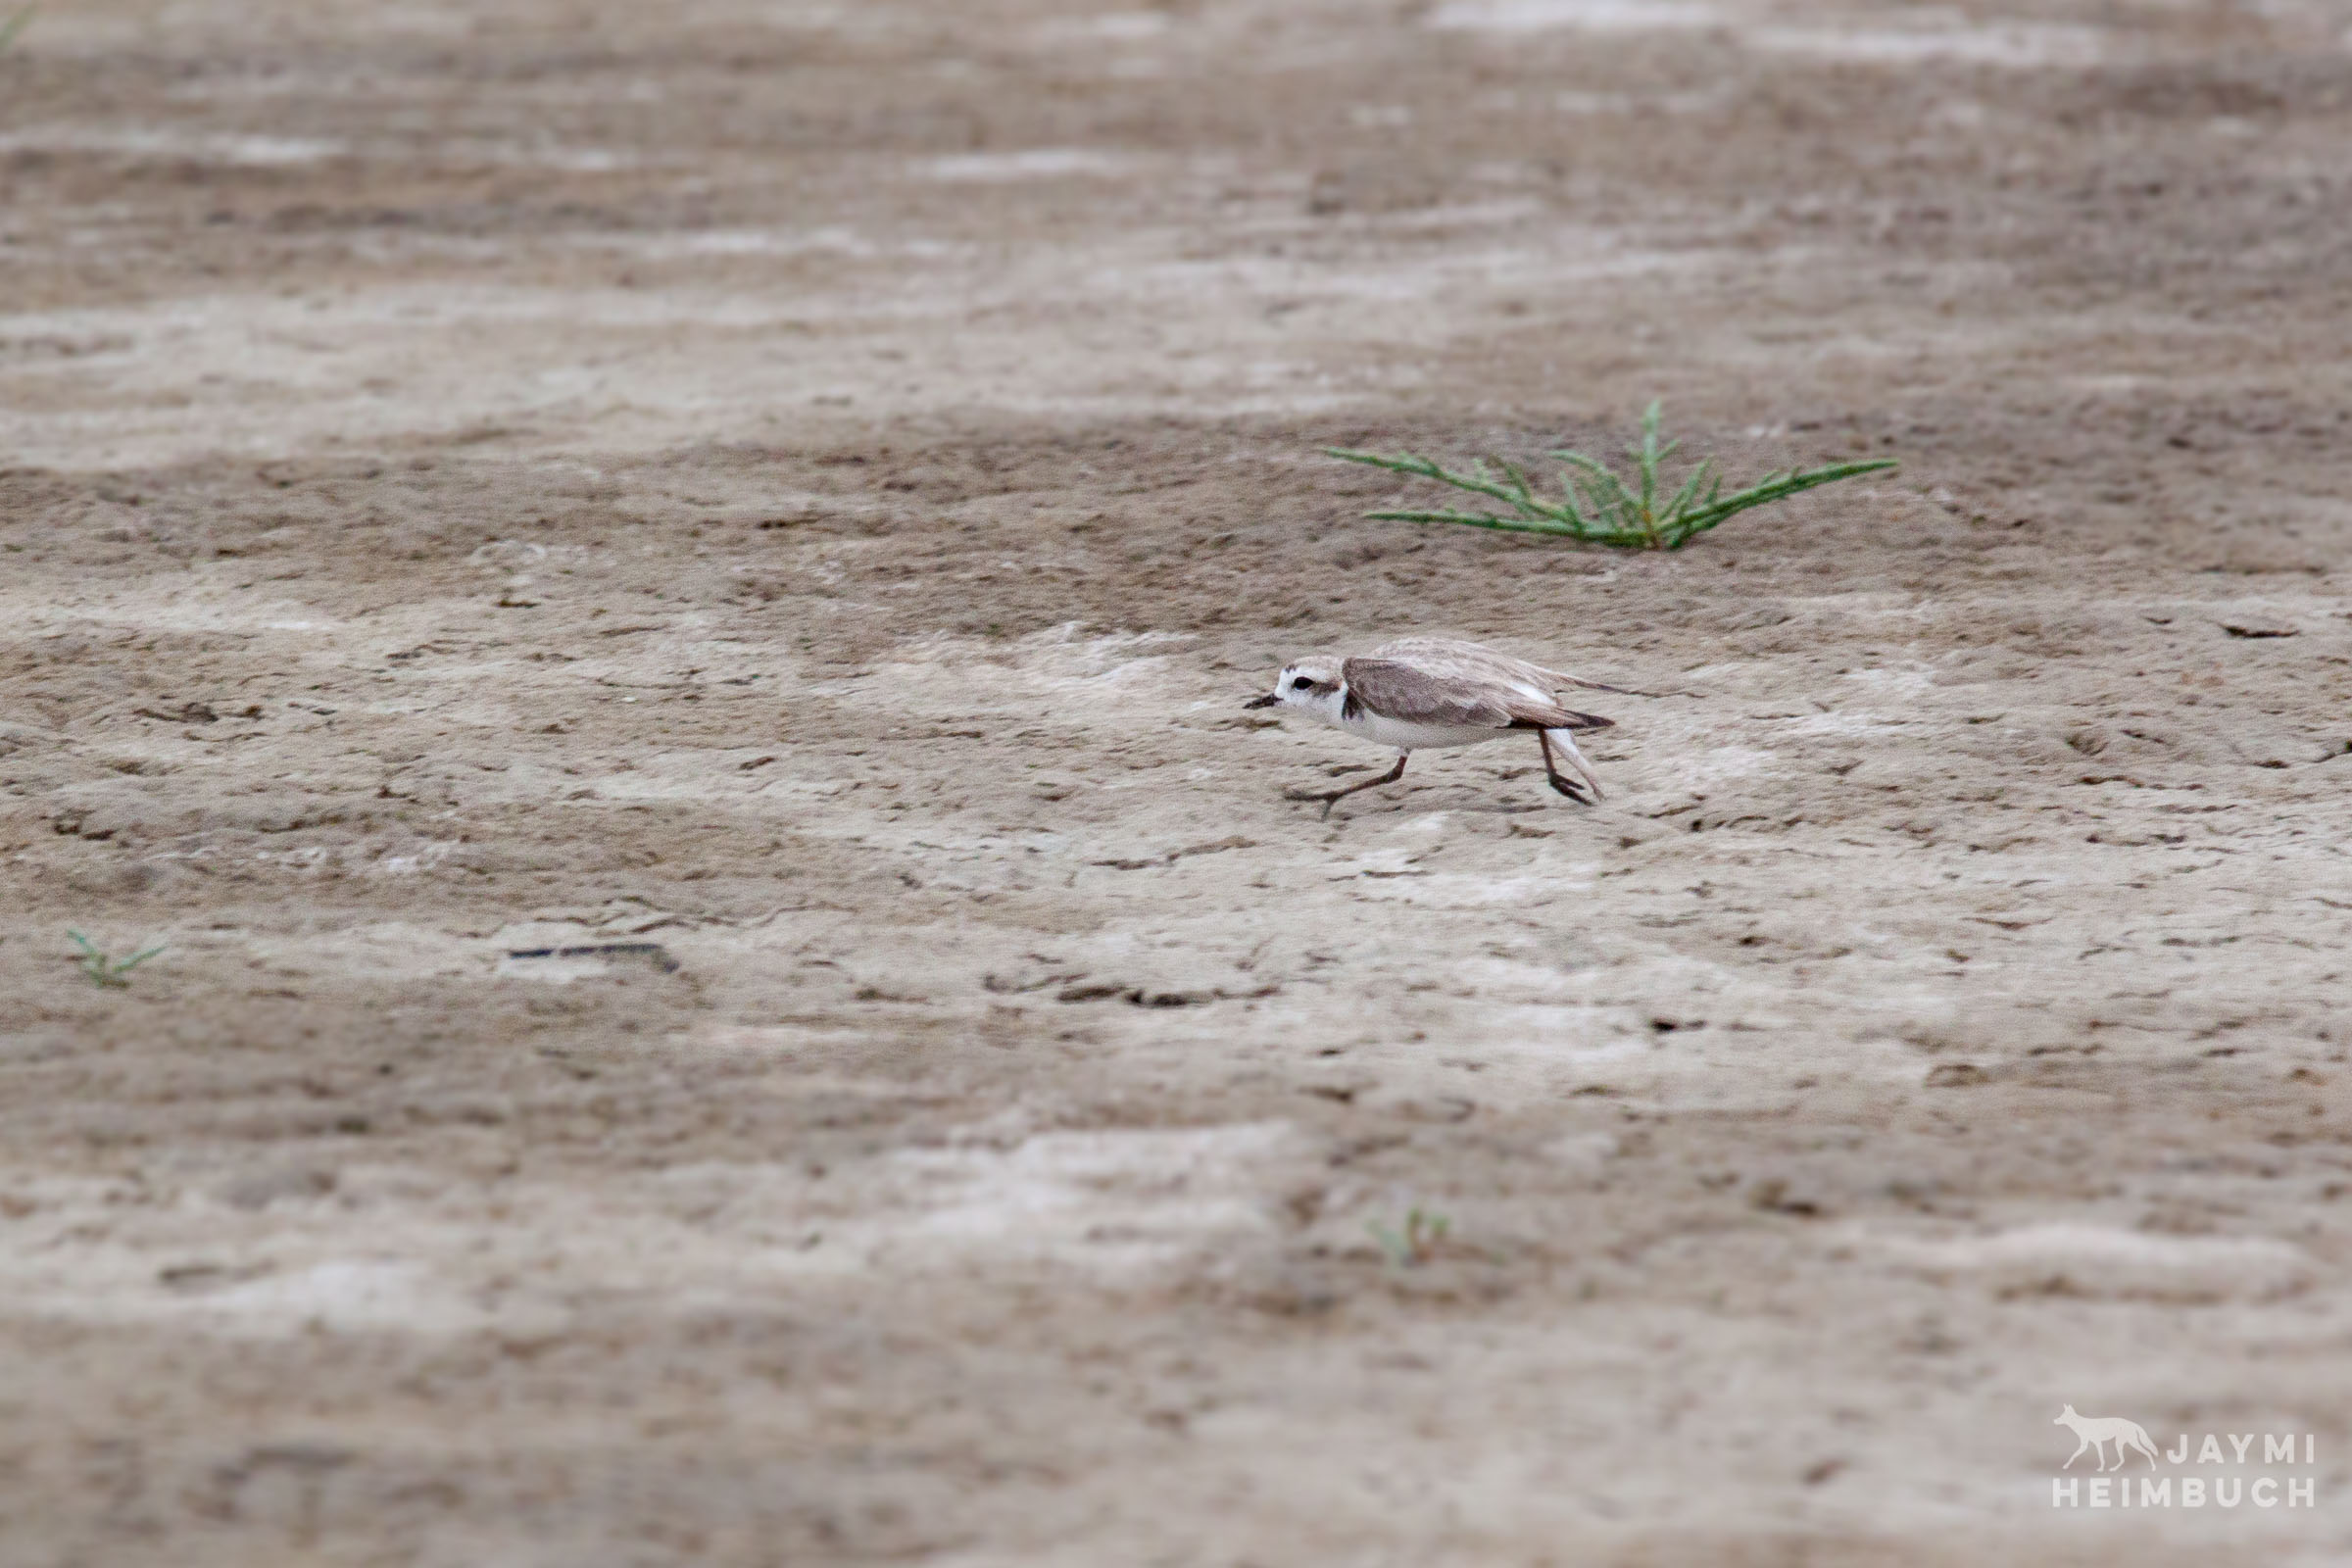 Western snowy plover, adult displaying predator defensive strategy